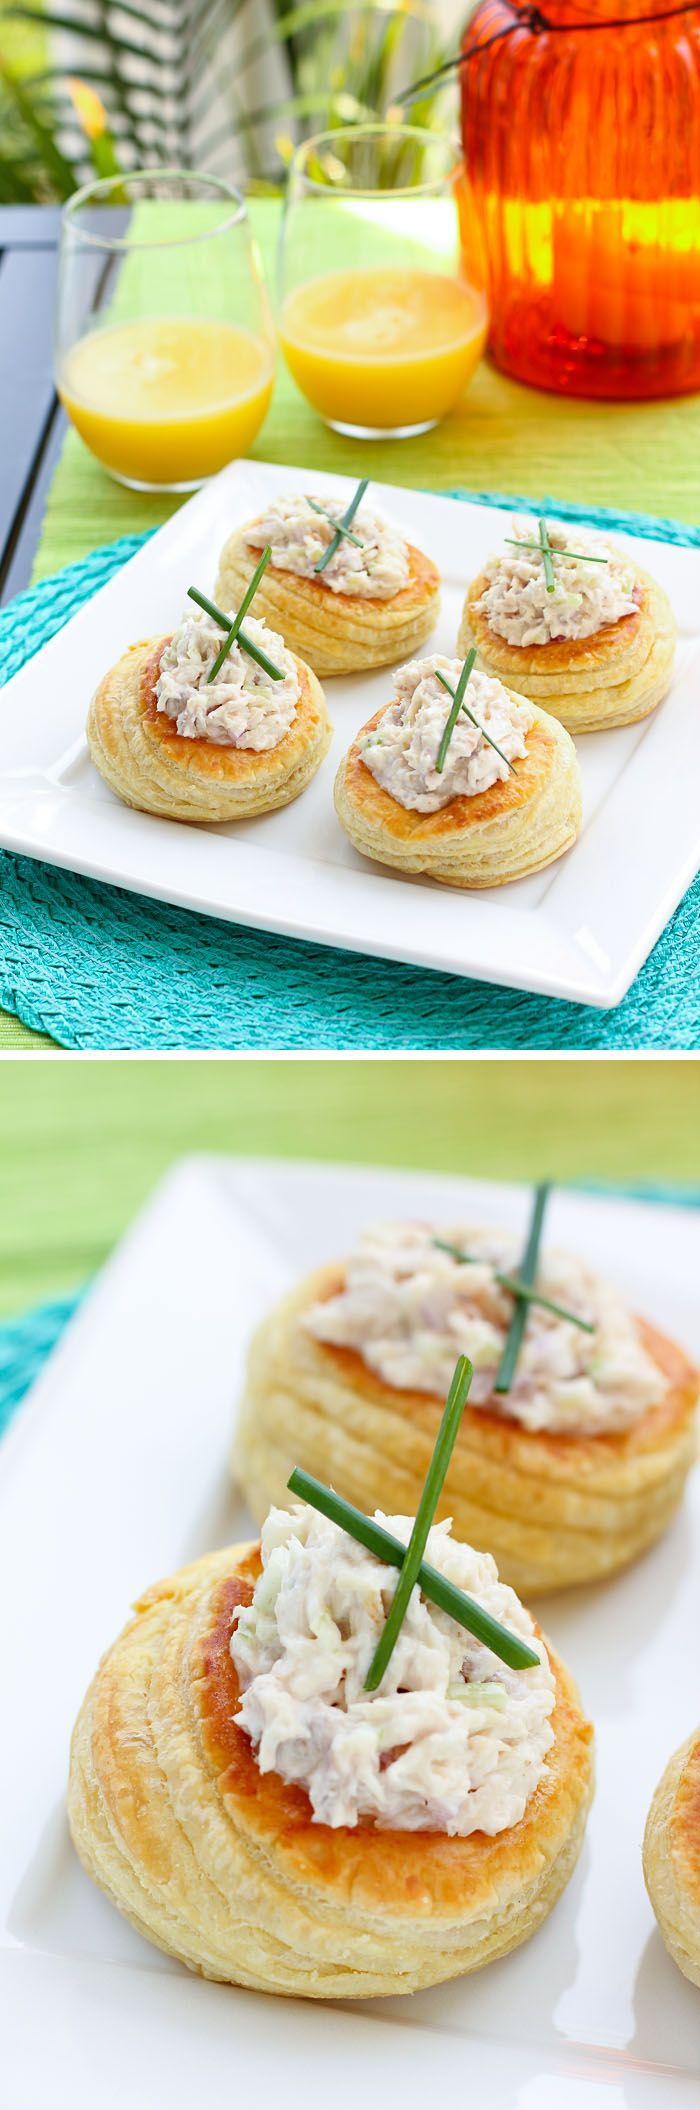 Smoked Whitefish Salad Vols-au-Vent: Easy, delicious, and snazzy appetizers! It'll look like you spent forever in the kitchen.